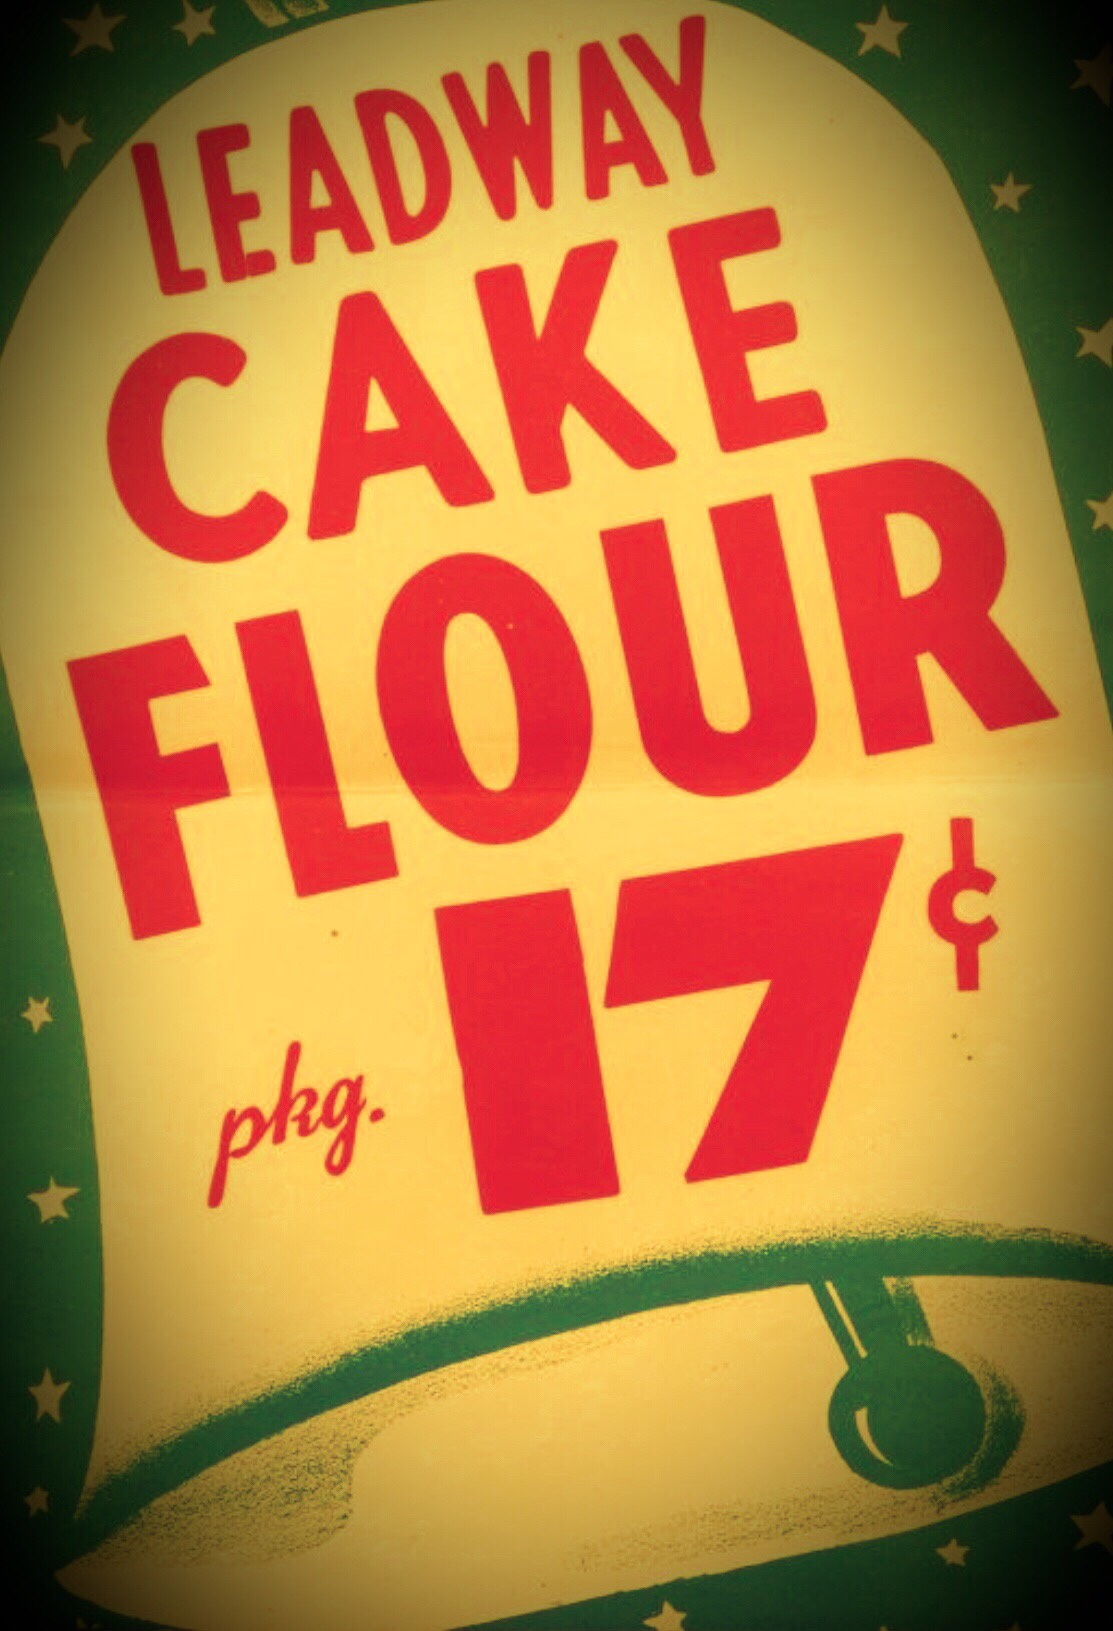 Speaker of the House of Assembly Fined for Selling Overpriced Flour 1947